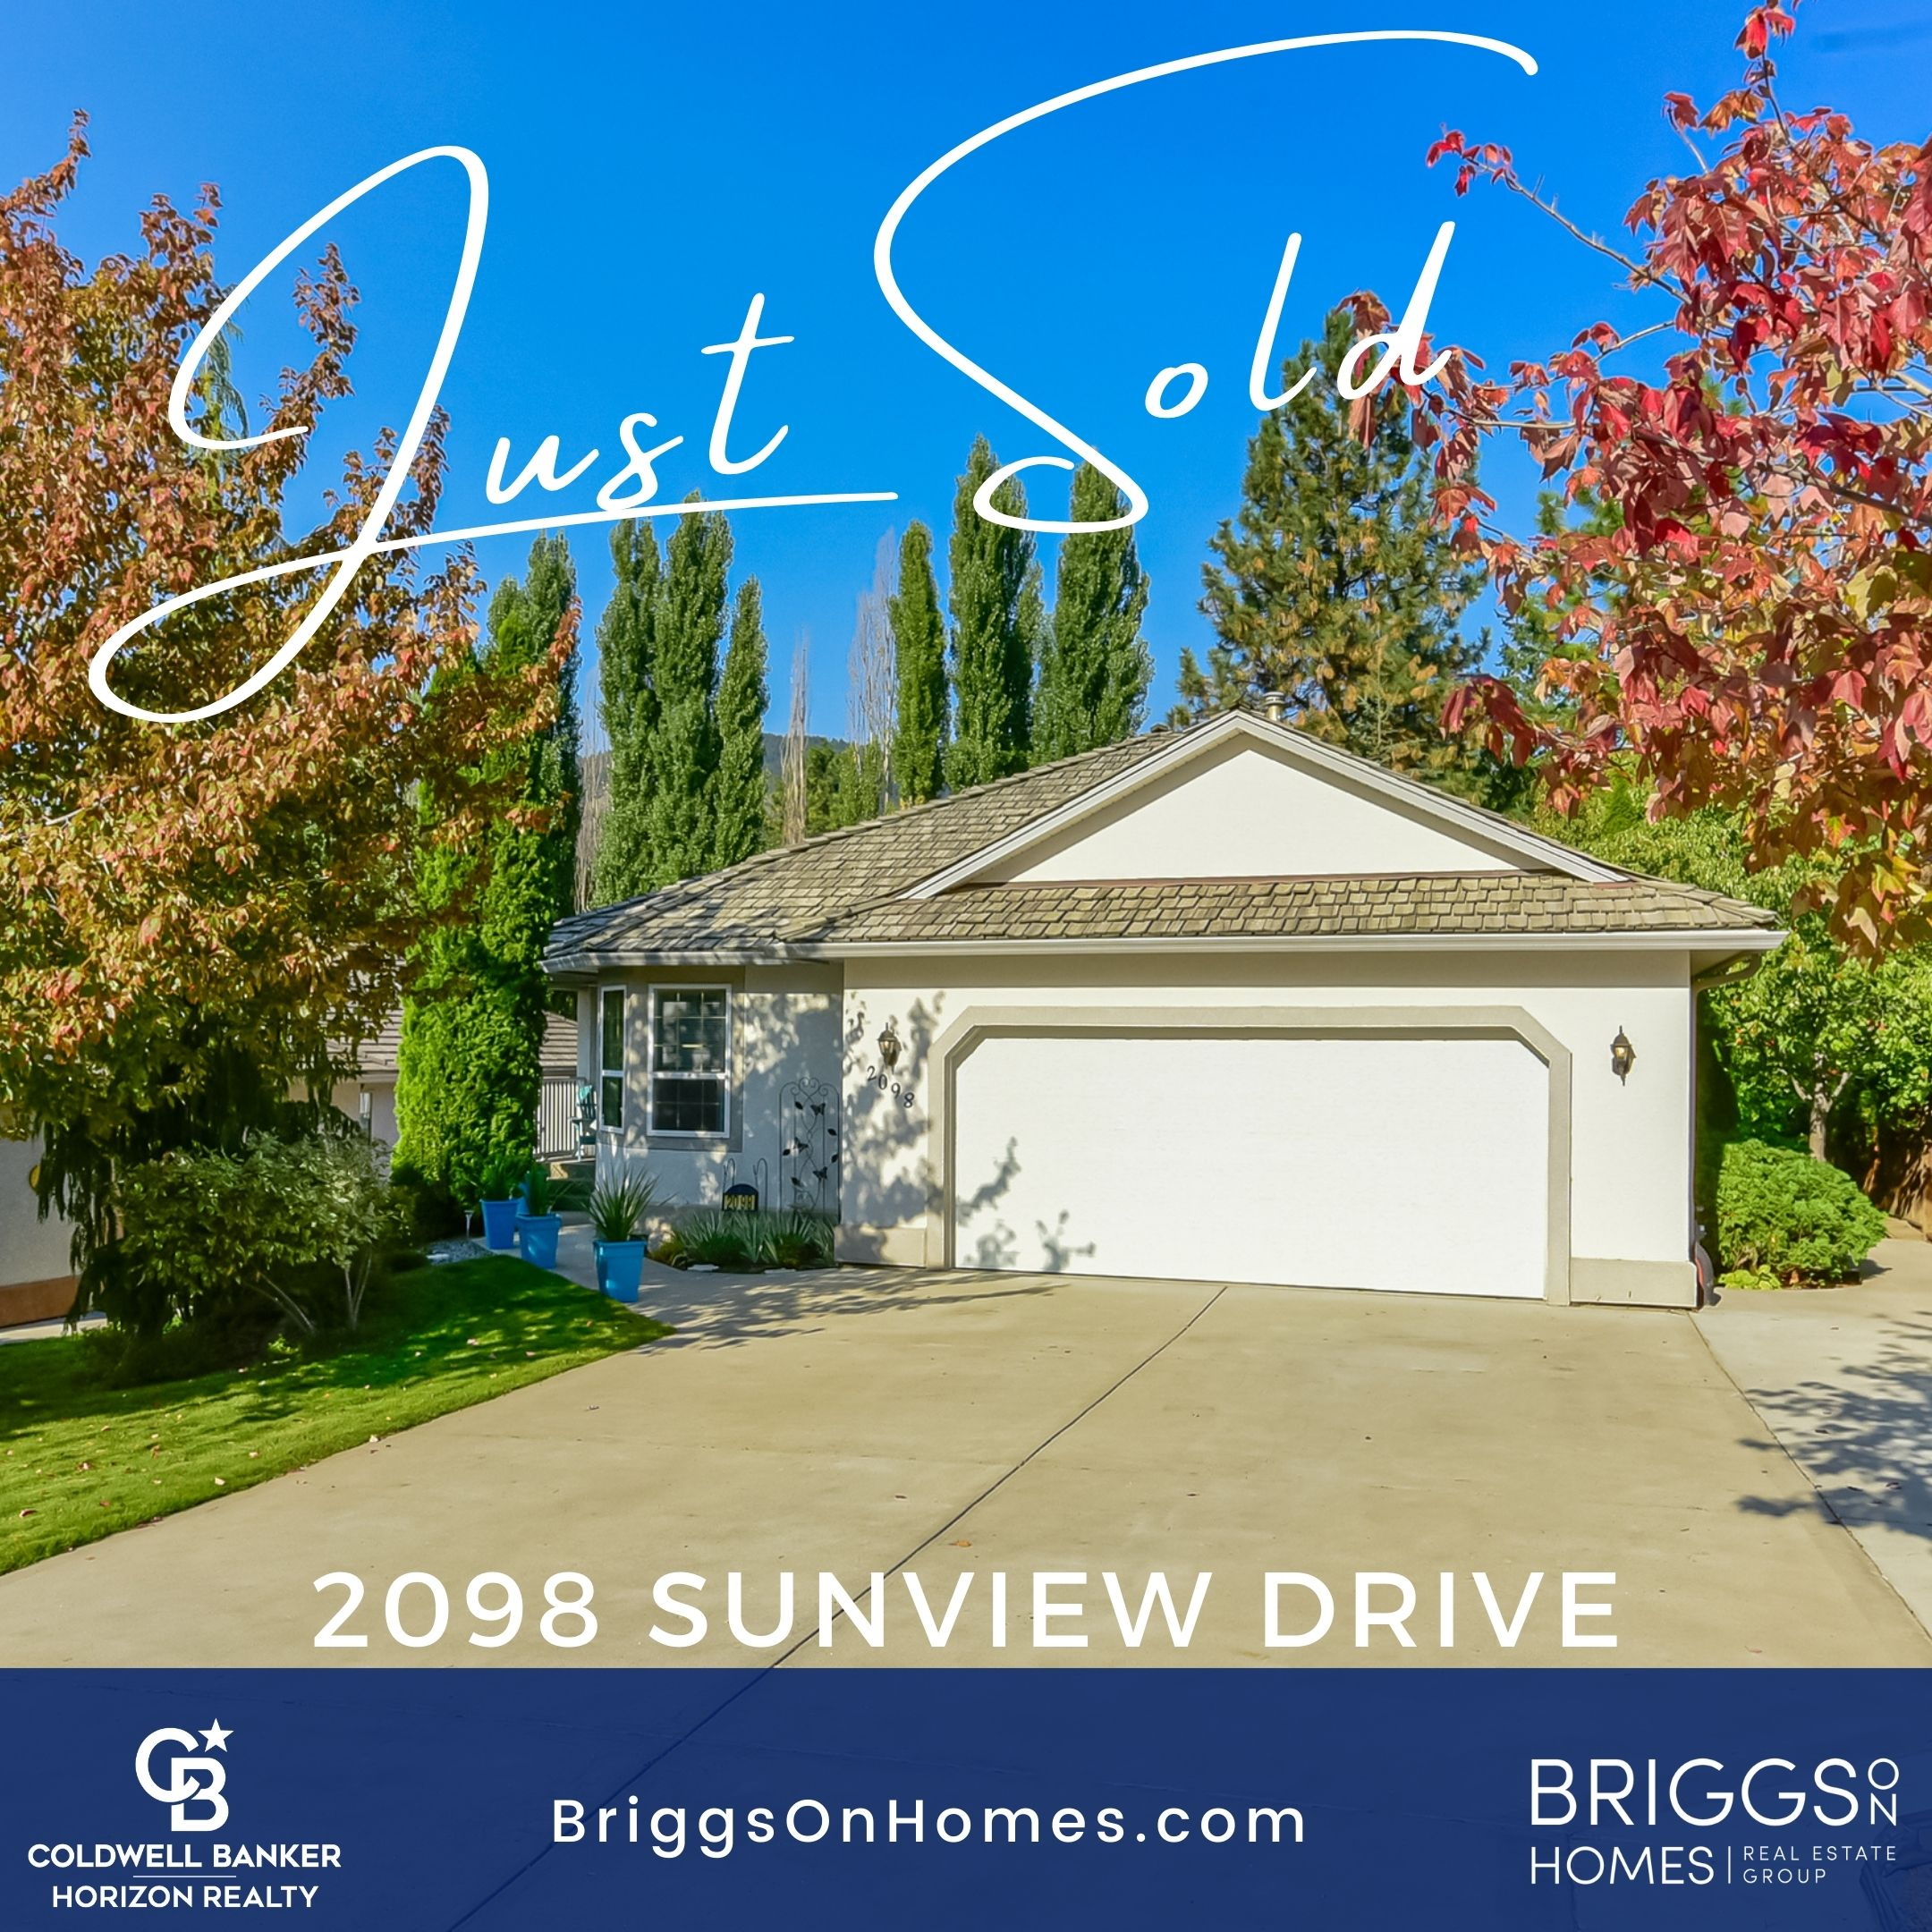 Just SOLD Sunview Drive